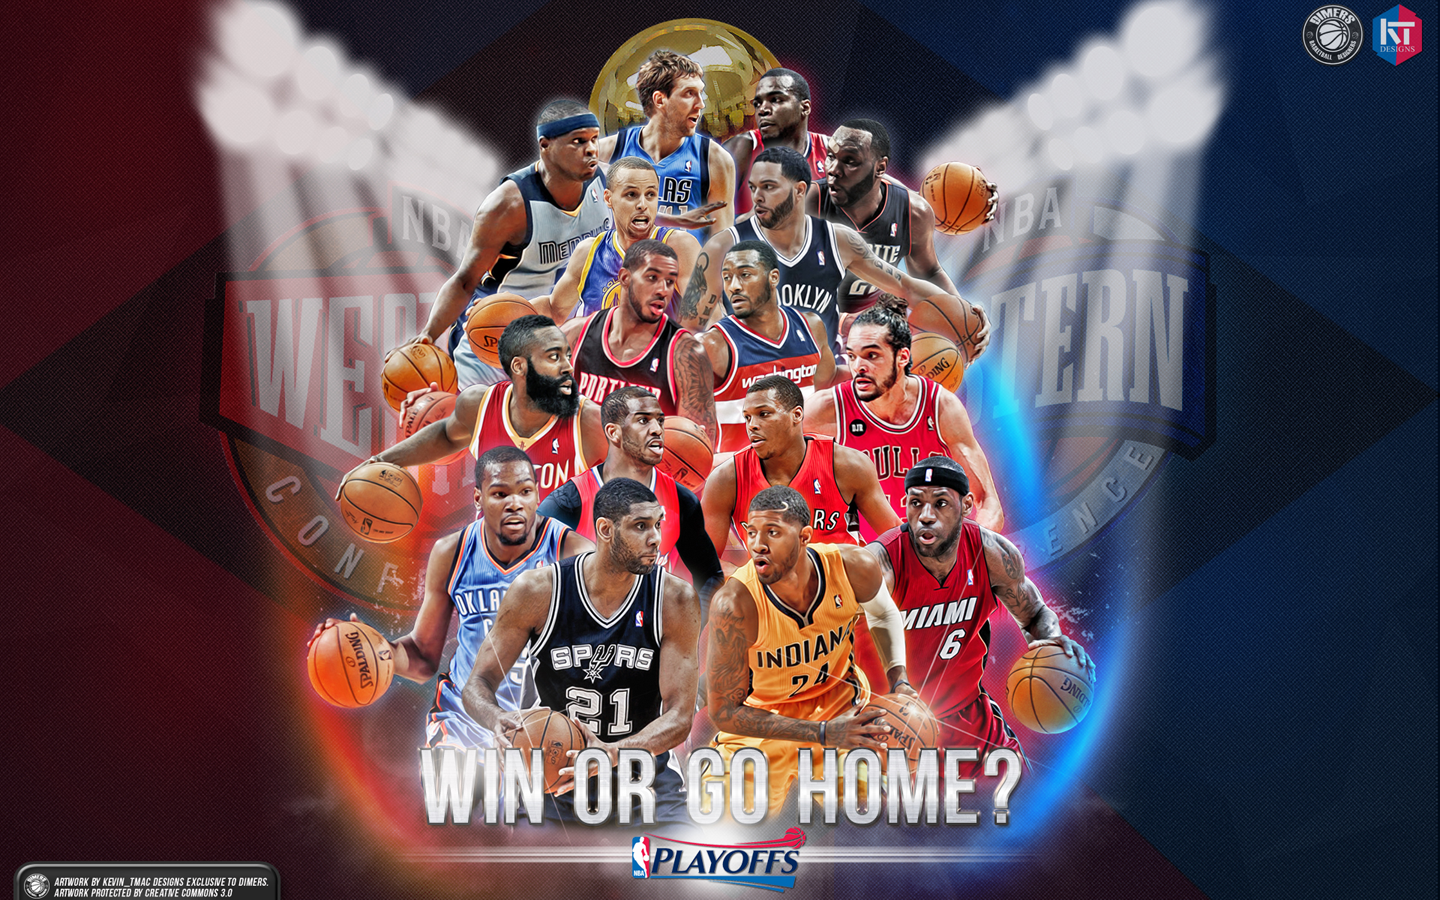 NBA Play off Wallpaper